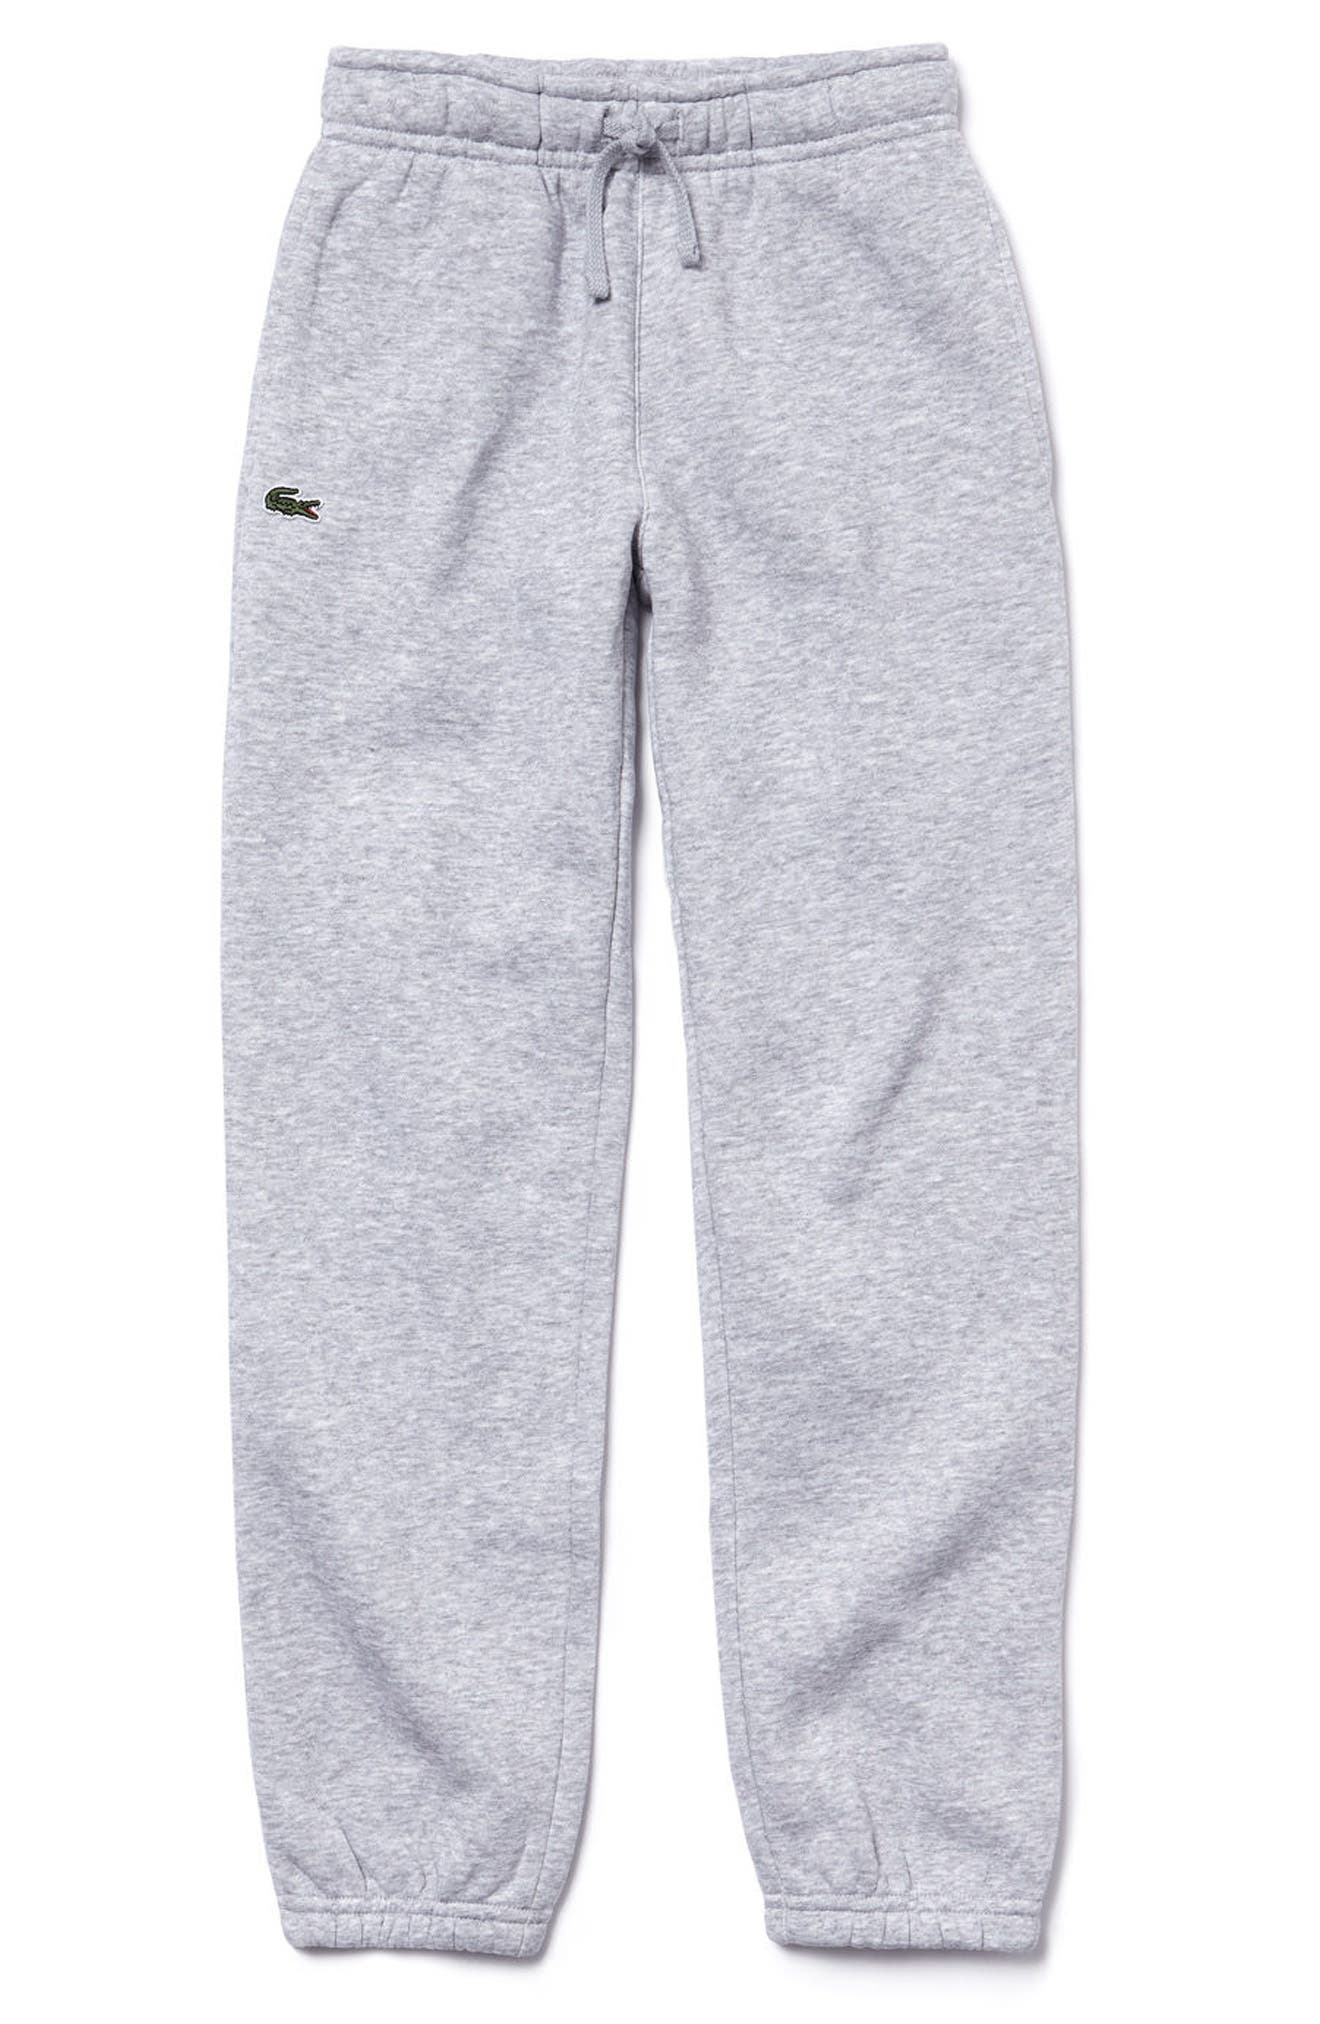 Sport Sweatpants,                         Main,                         color, 020